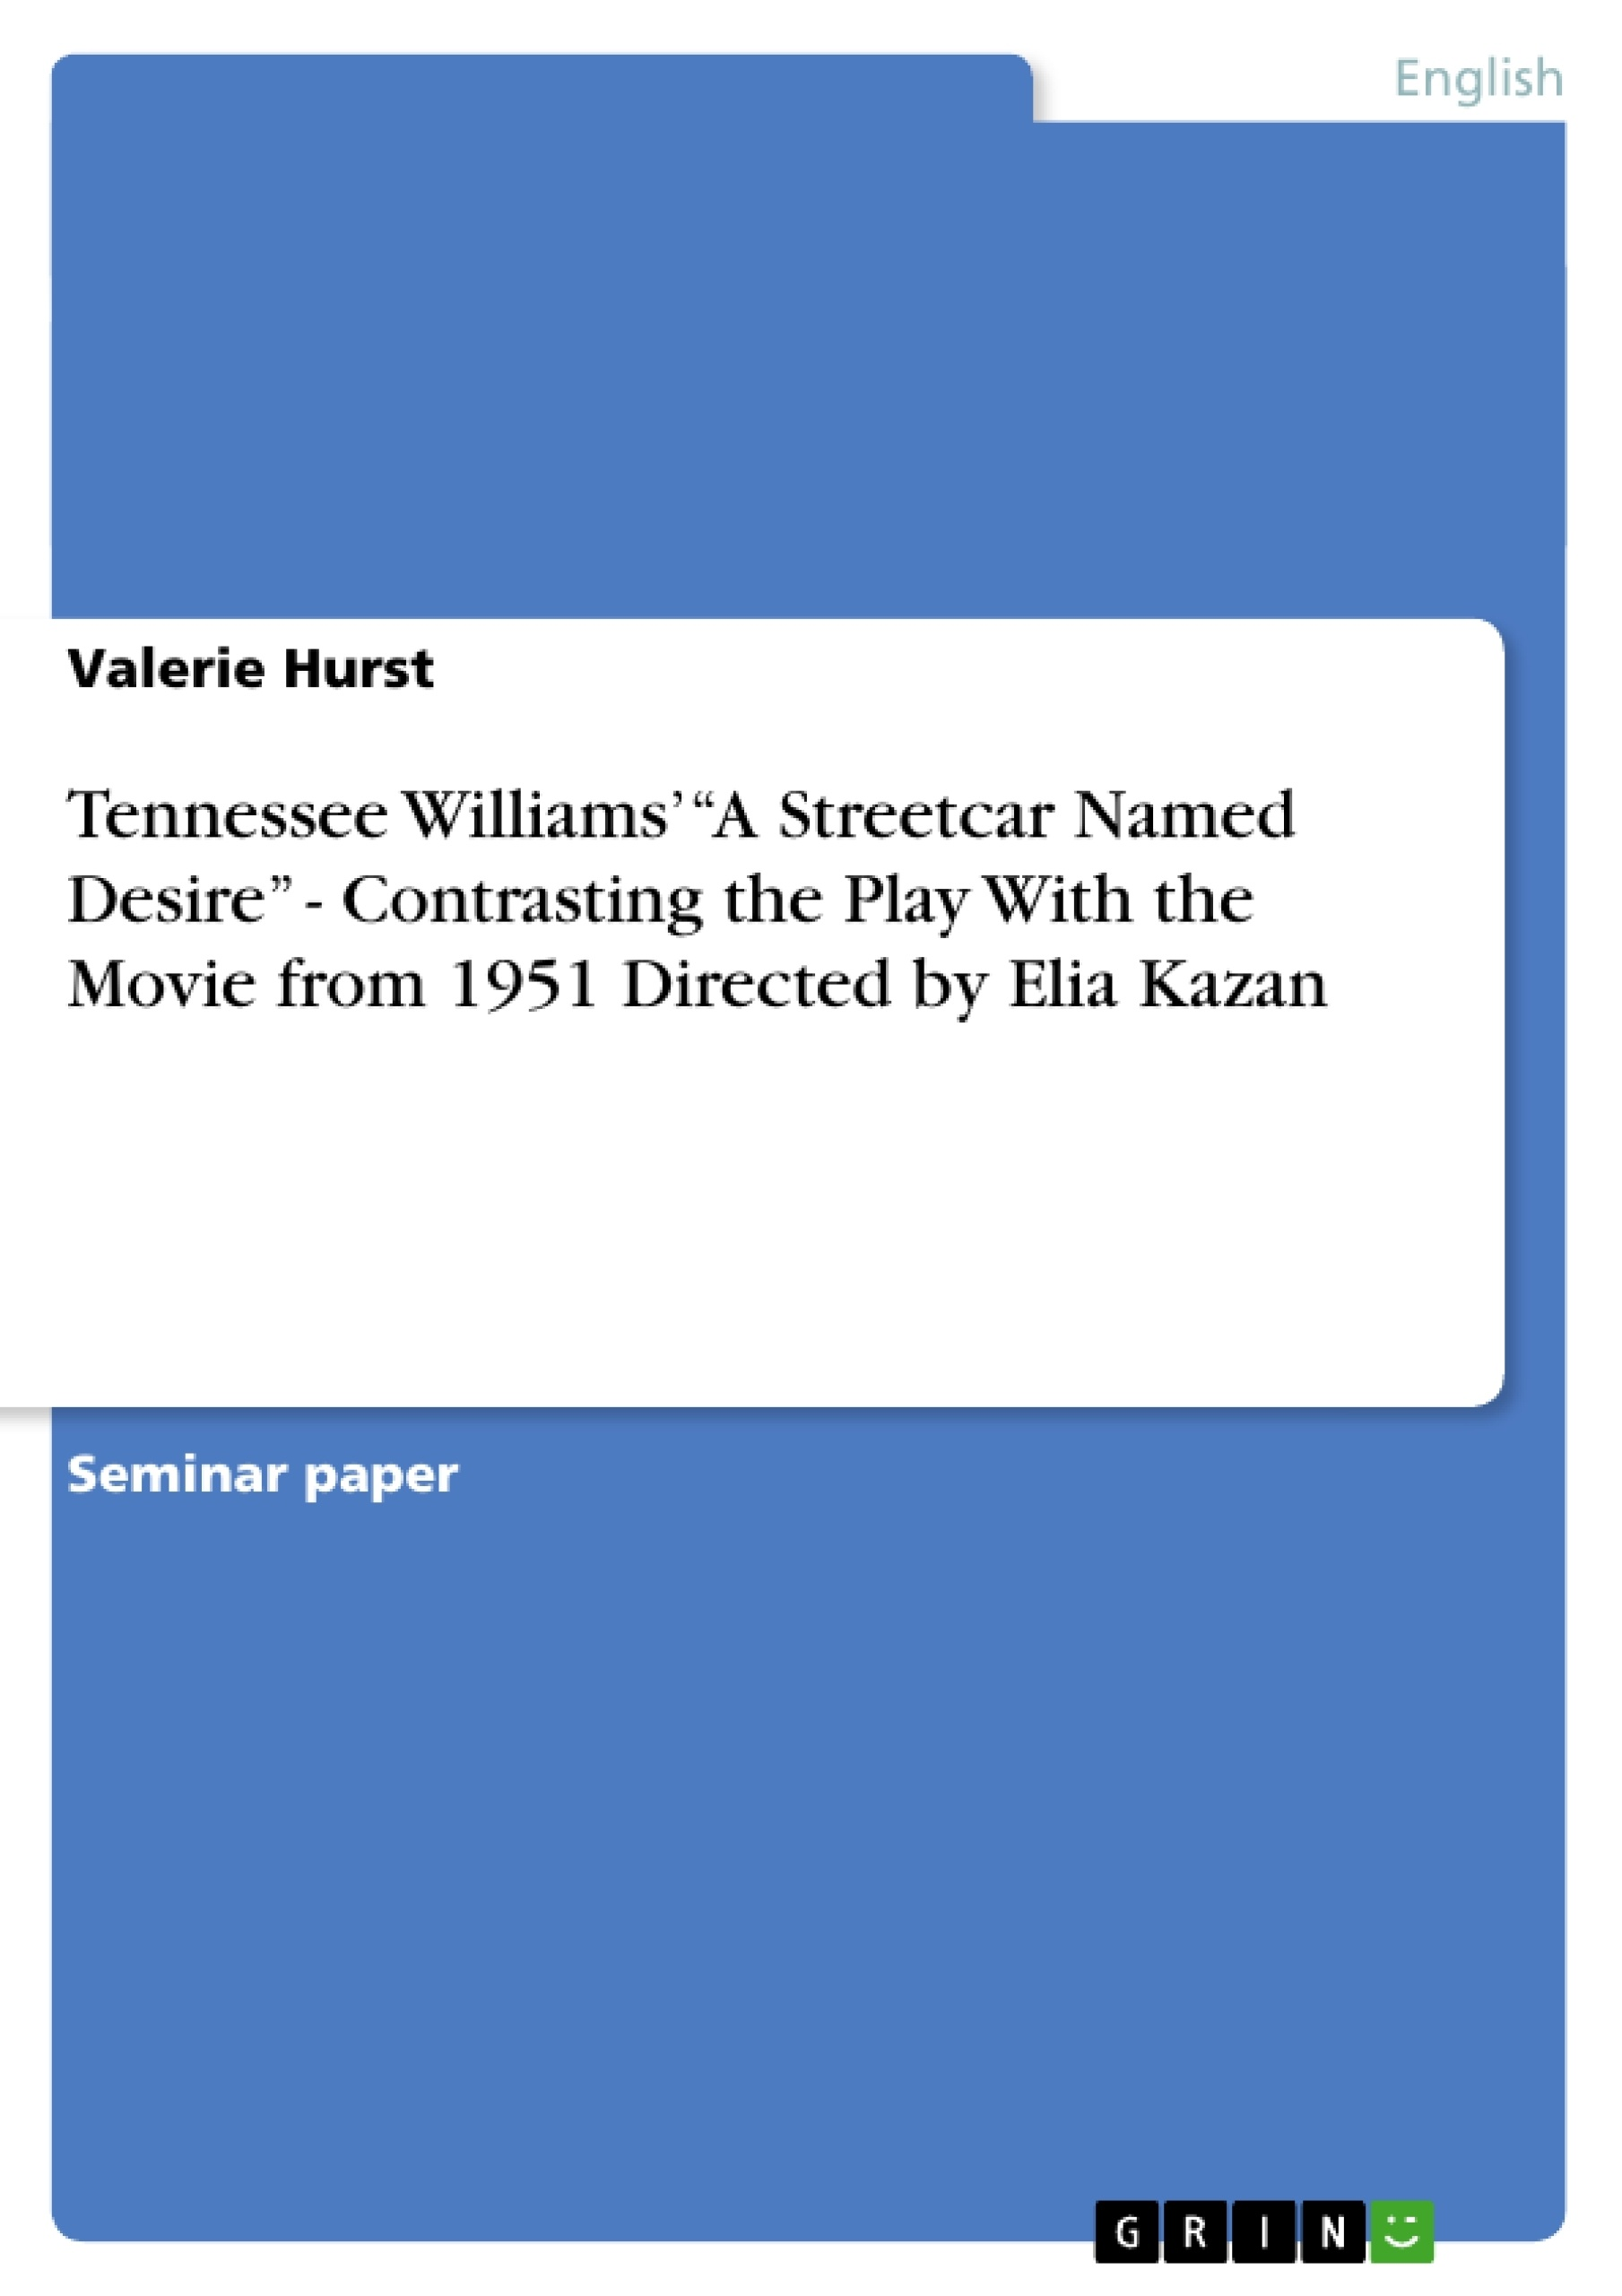 """Title: Tennessee Williams' """"A Streetcar Named Desire"""" - Contrasting the Play With the Movie from 1951 Directed by Elia Kazan"""